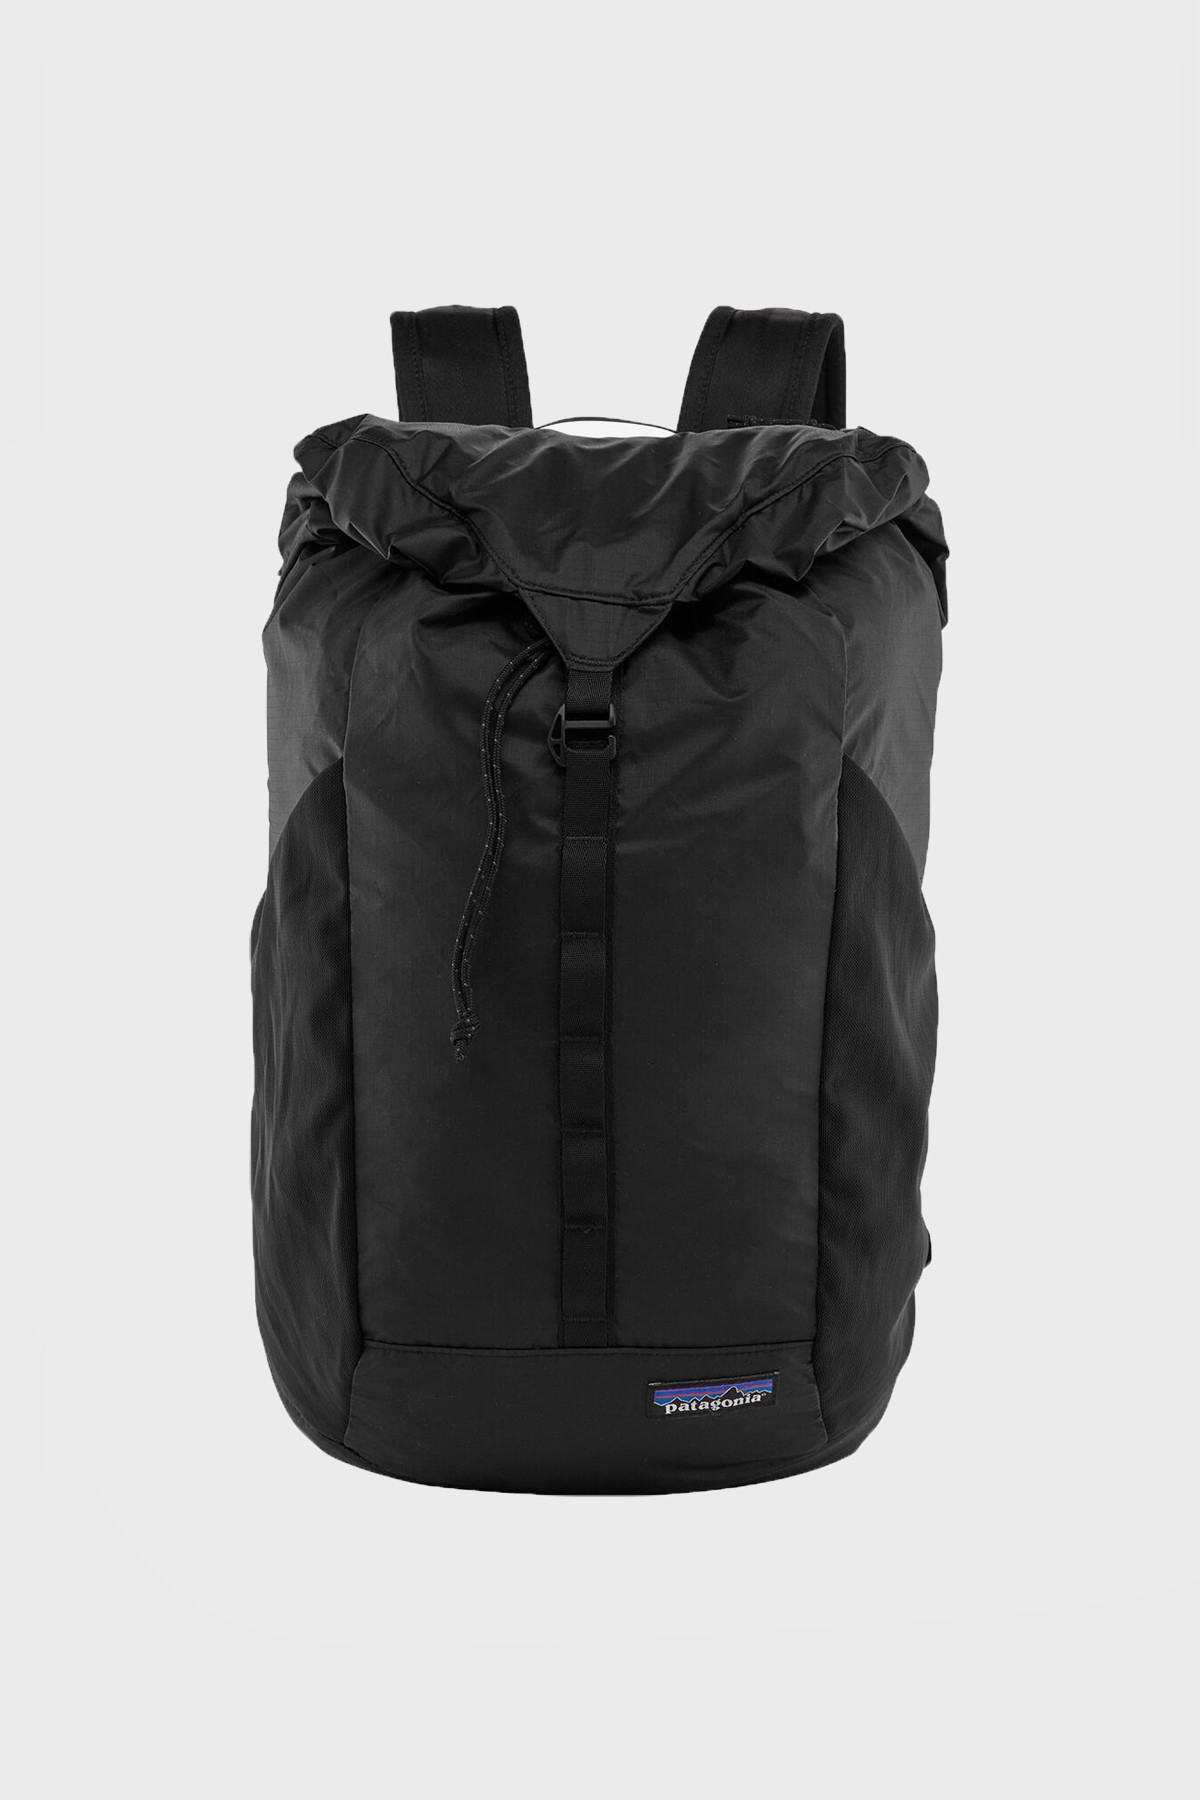 Patagonia - Ultralight Black Hole® Pack 20L - Black